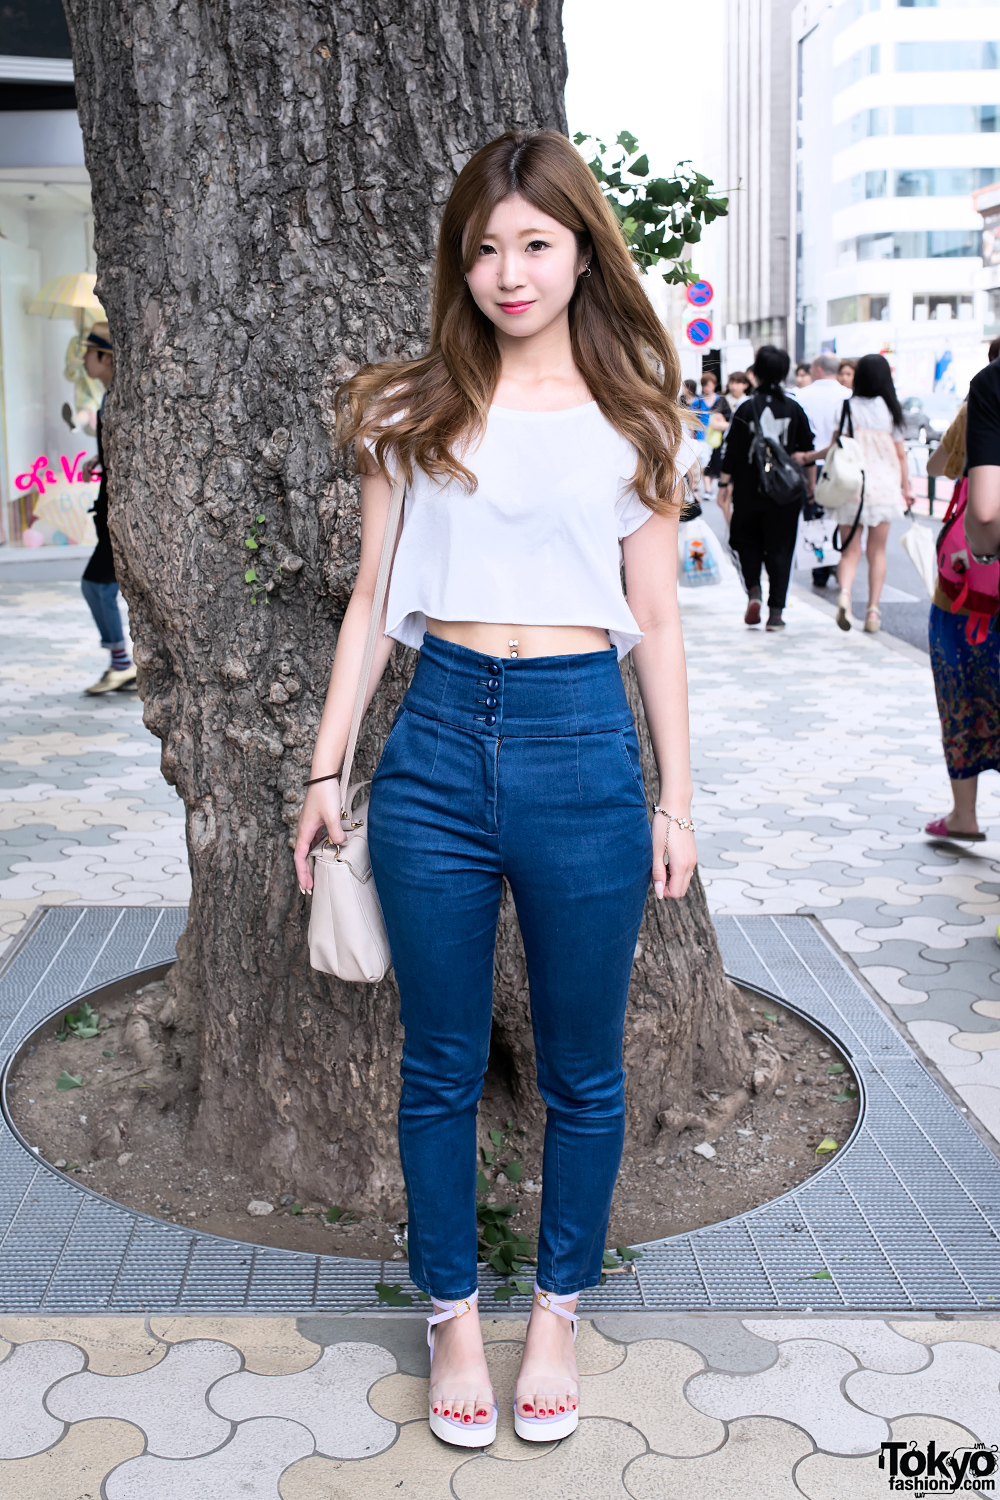 Crop Top Navel Piercing High Waist Jeans &amp Samantha Vega in Harajuku